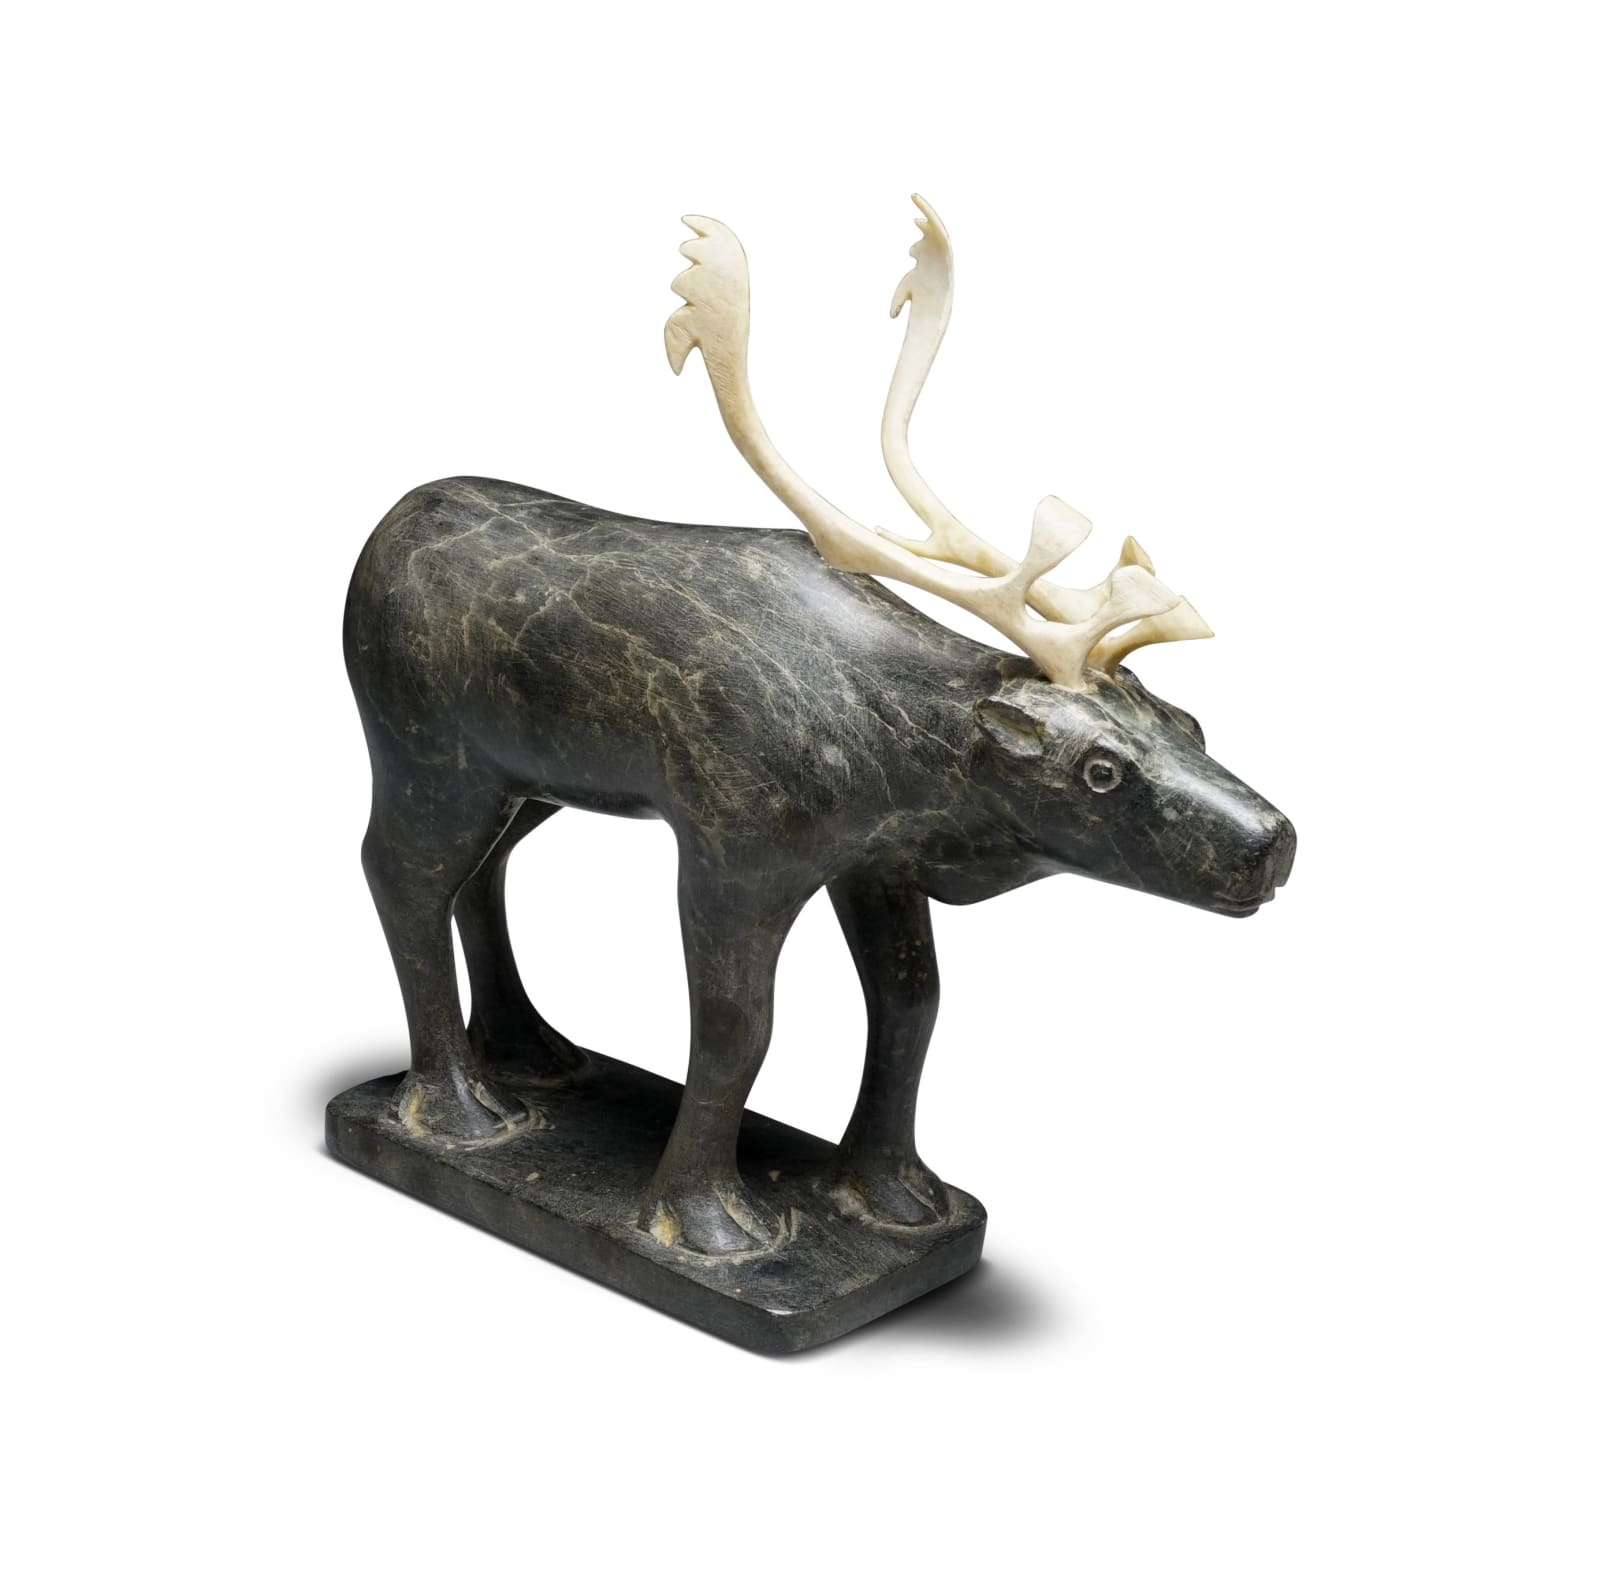 JOANASI KAYAKJUAK (1917-1994) SANIRAJAK (HALL BEACH) Standing Caribou, early 1960s stone and ivory, 5 1/2 x 8 x 2 1/2 in (14 x 20.3 x 6.3 cm) ESTIMATE: $600 — $900 New Price: $550